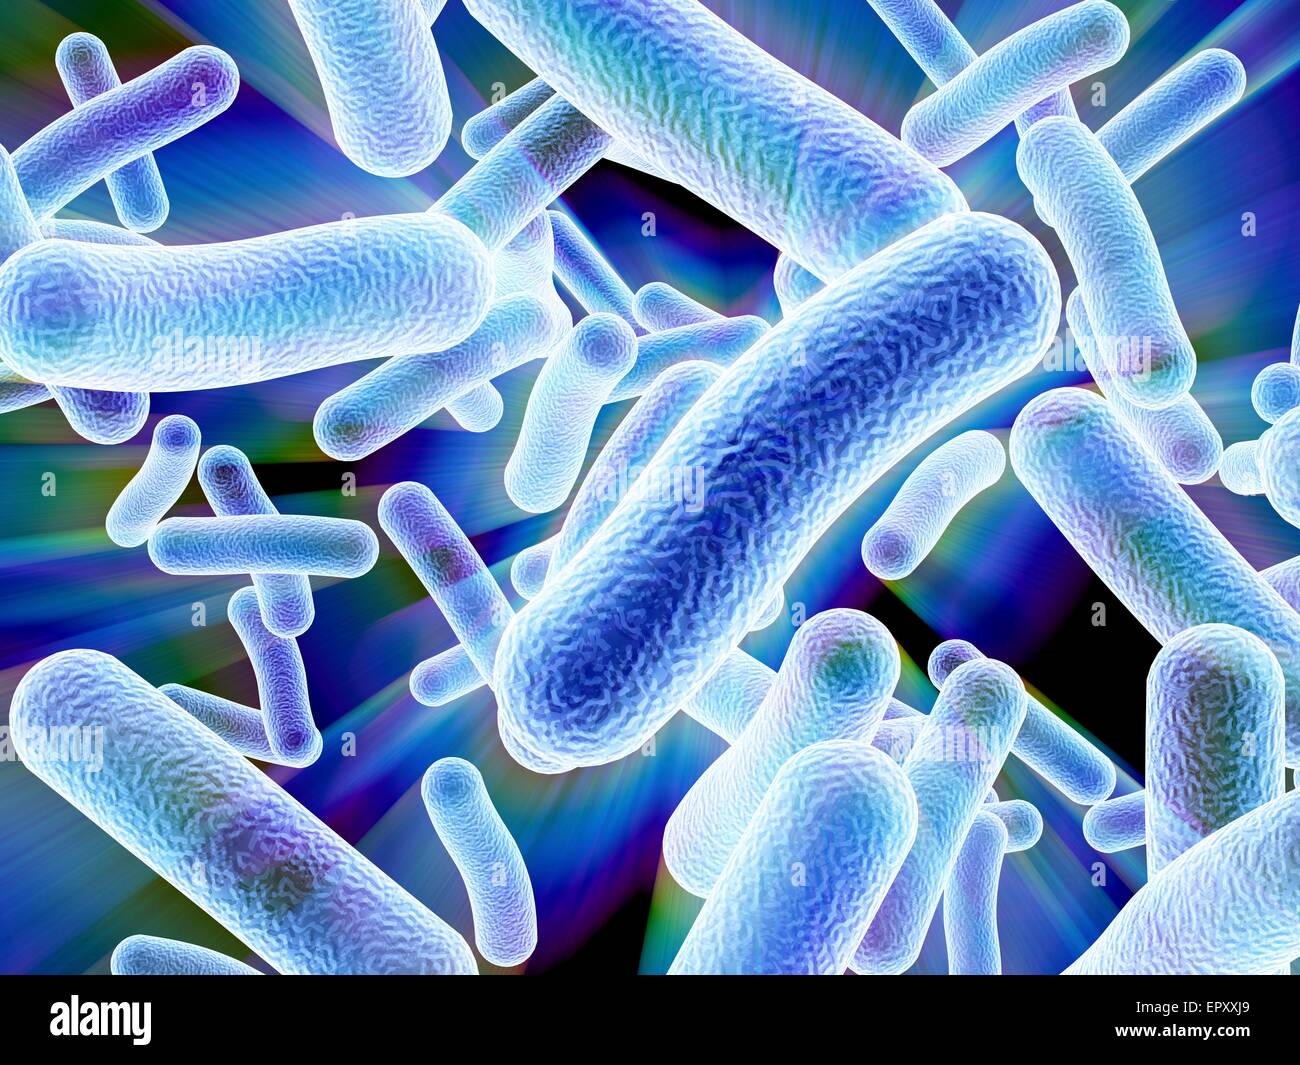 Computer artwork depicting a cluster of bacteria. - Stock Image